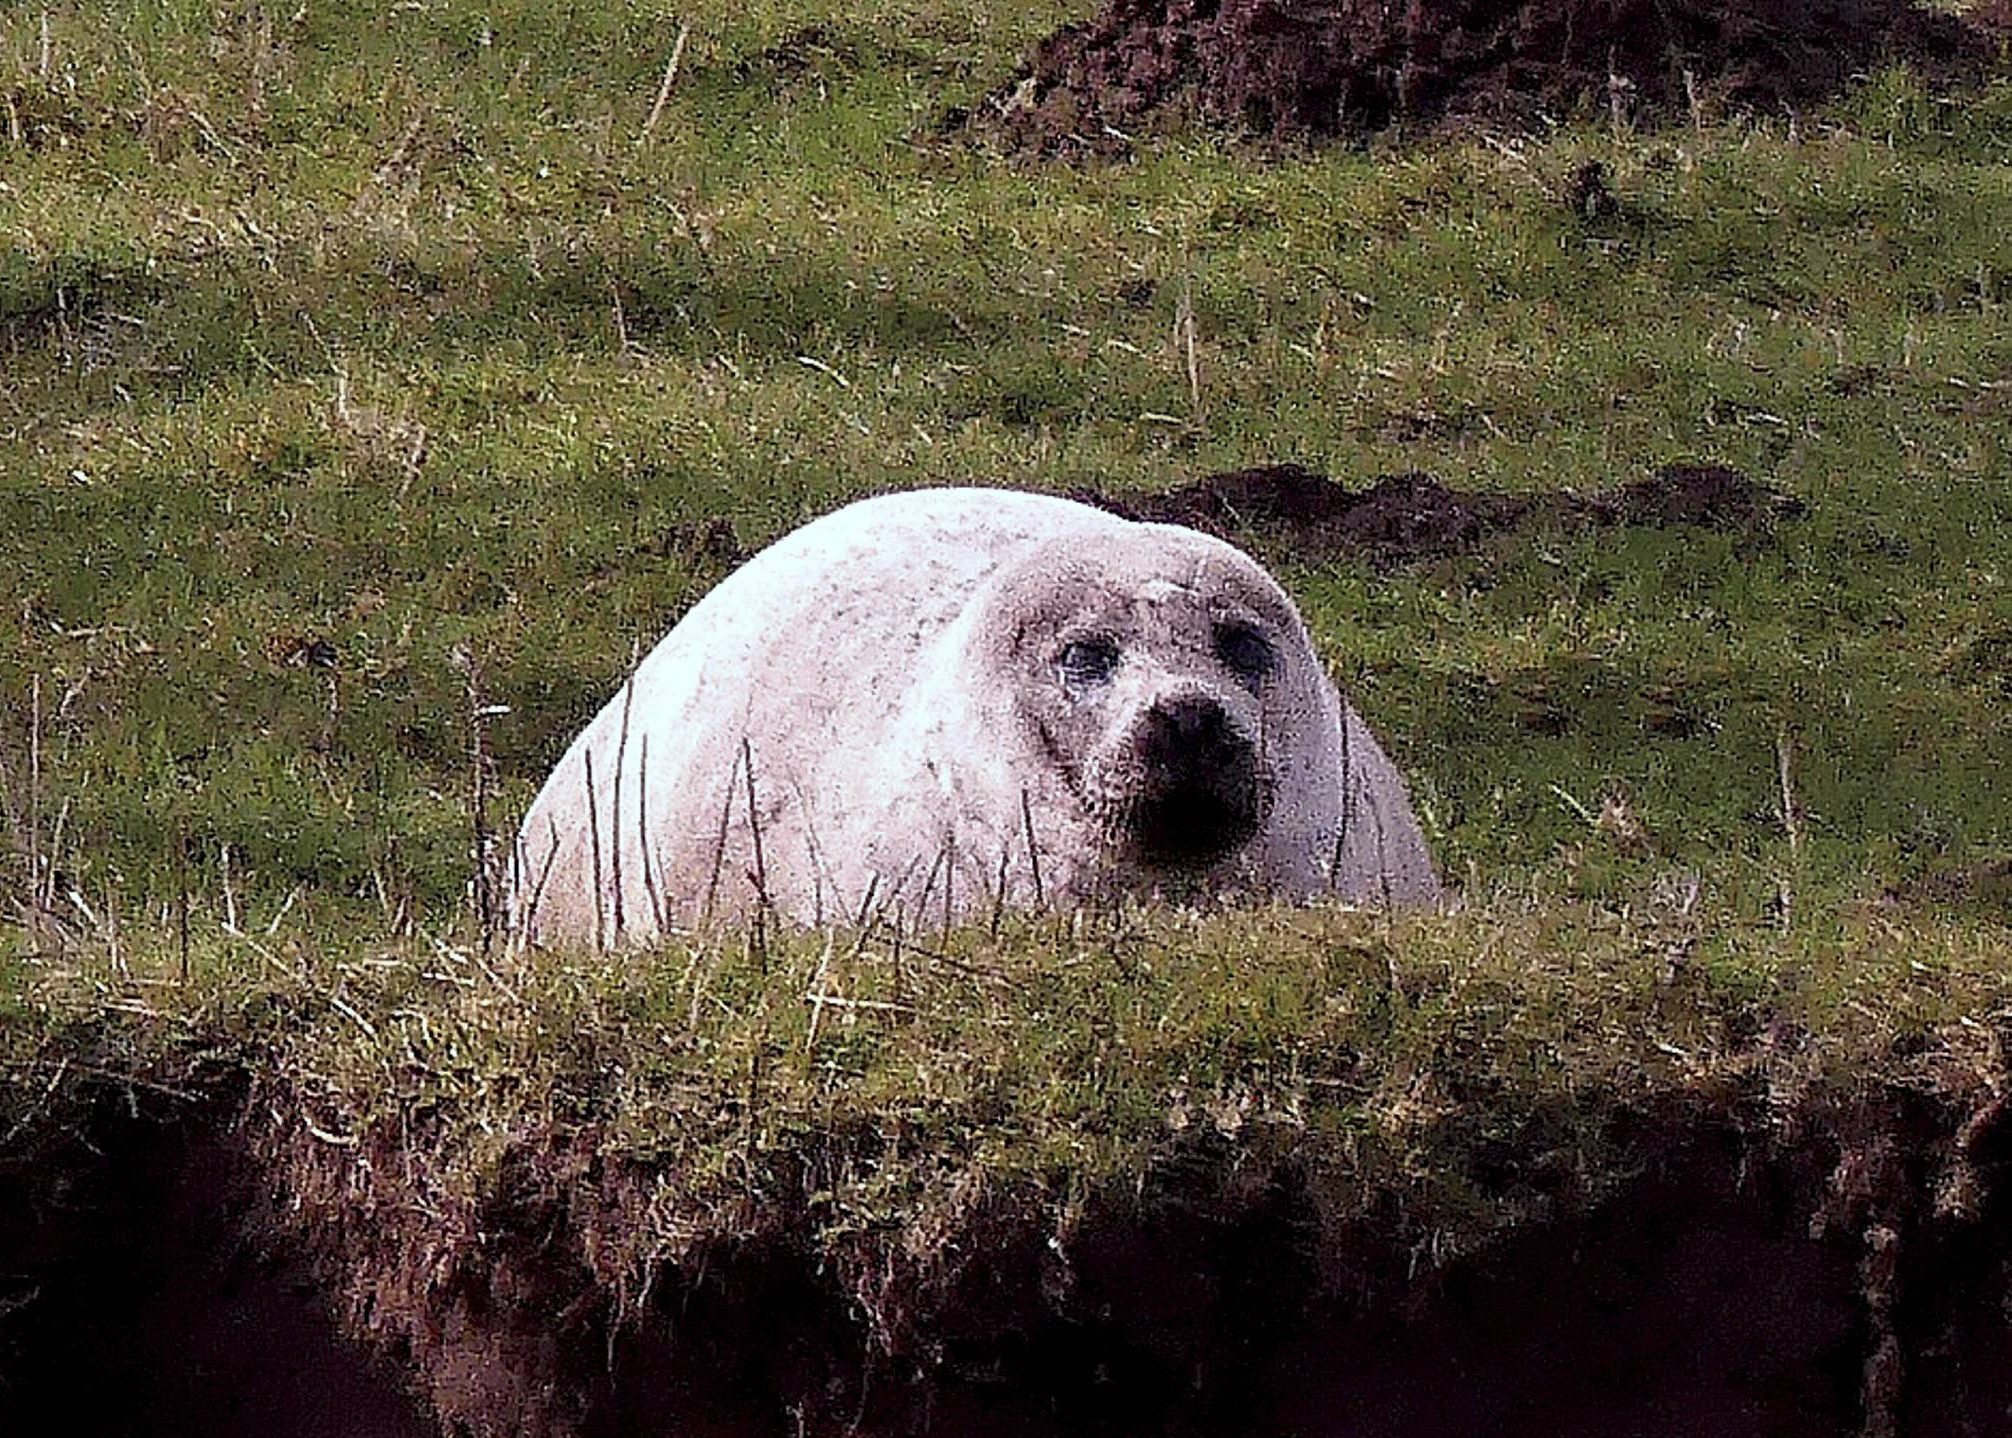 Date 12/08/2018 File picture taken earlier this year NOTE Please byline pic Karen Hargreave/NorthNews A seal which was spotted in rural North Yorkshire in April this year after chasing fish some 50-miles inland has died after being captured by marine life rescuers, who had spent months trying to corner the animal. The seal hit the headlines earlier this year when it was spotted and photographed by stunned local Karen Hargreave at Topcliffe Weir near Thirsk. See copy by North News